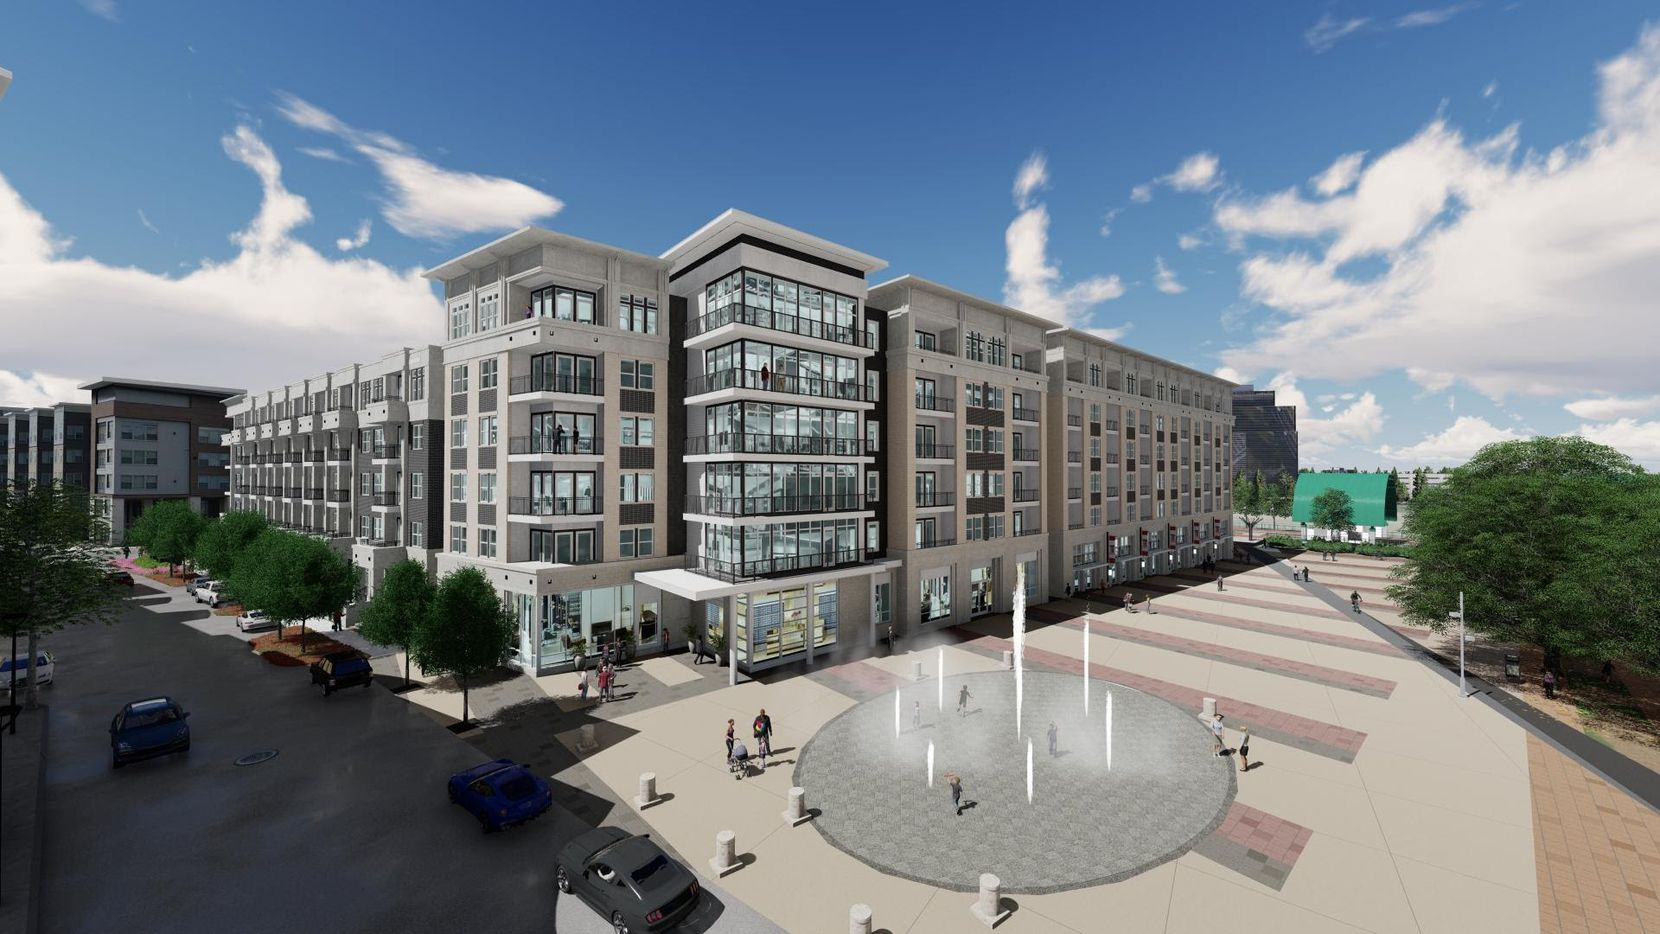 The Ovation at Galatyn Park apartments are under construction next door to DART's light rail station.